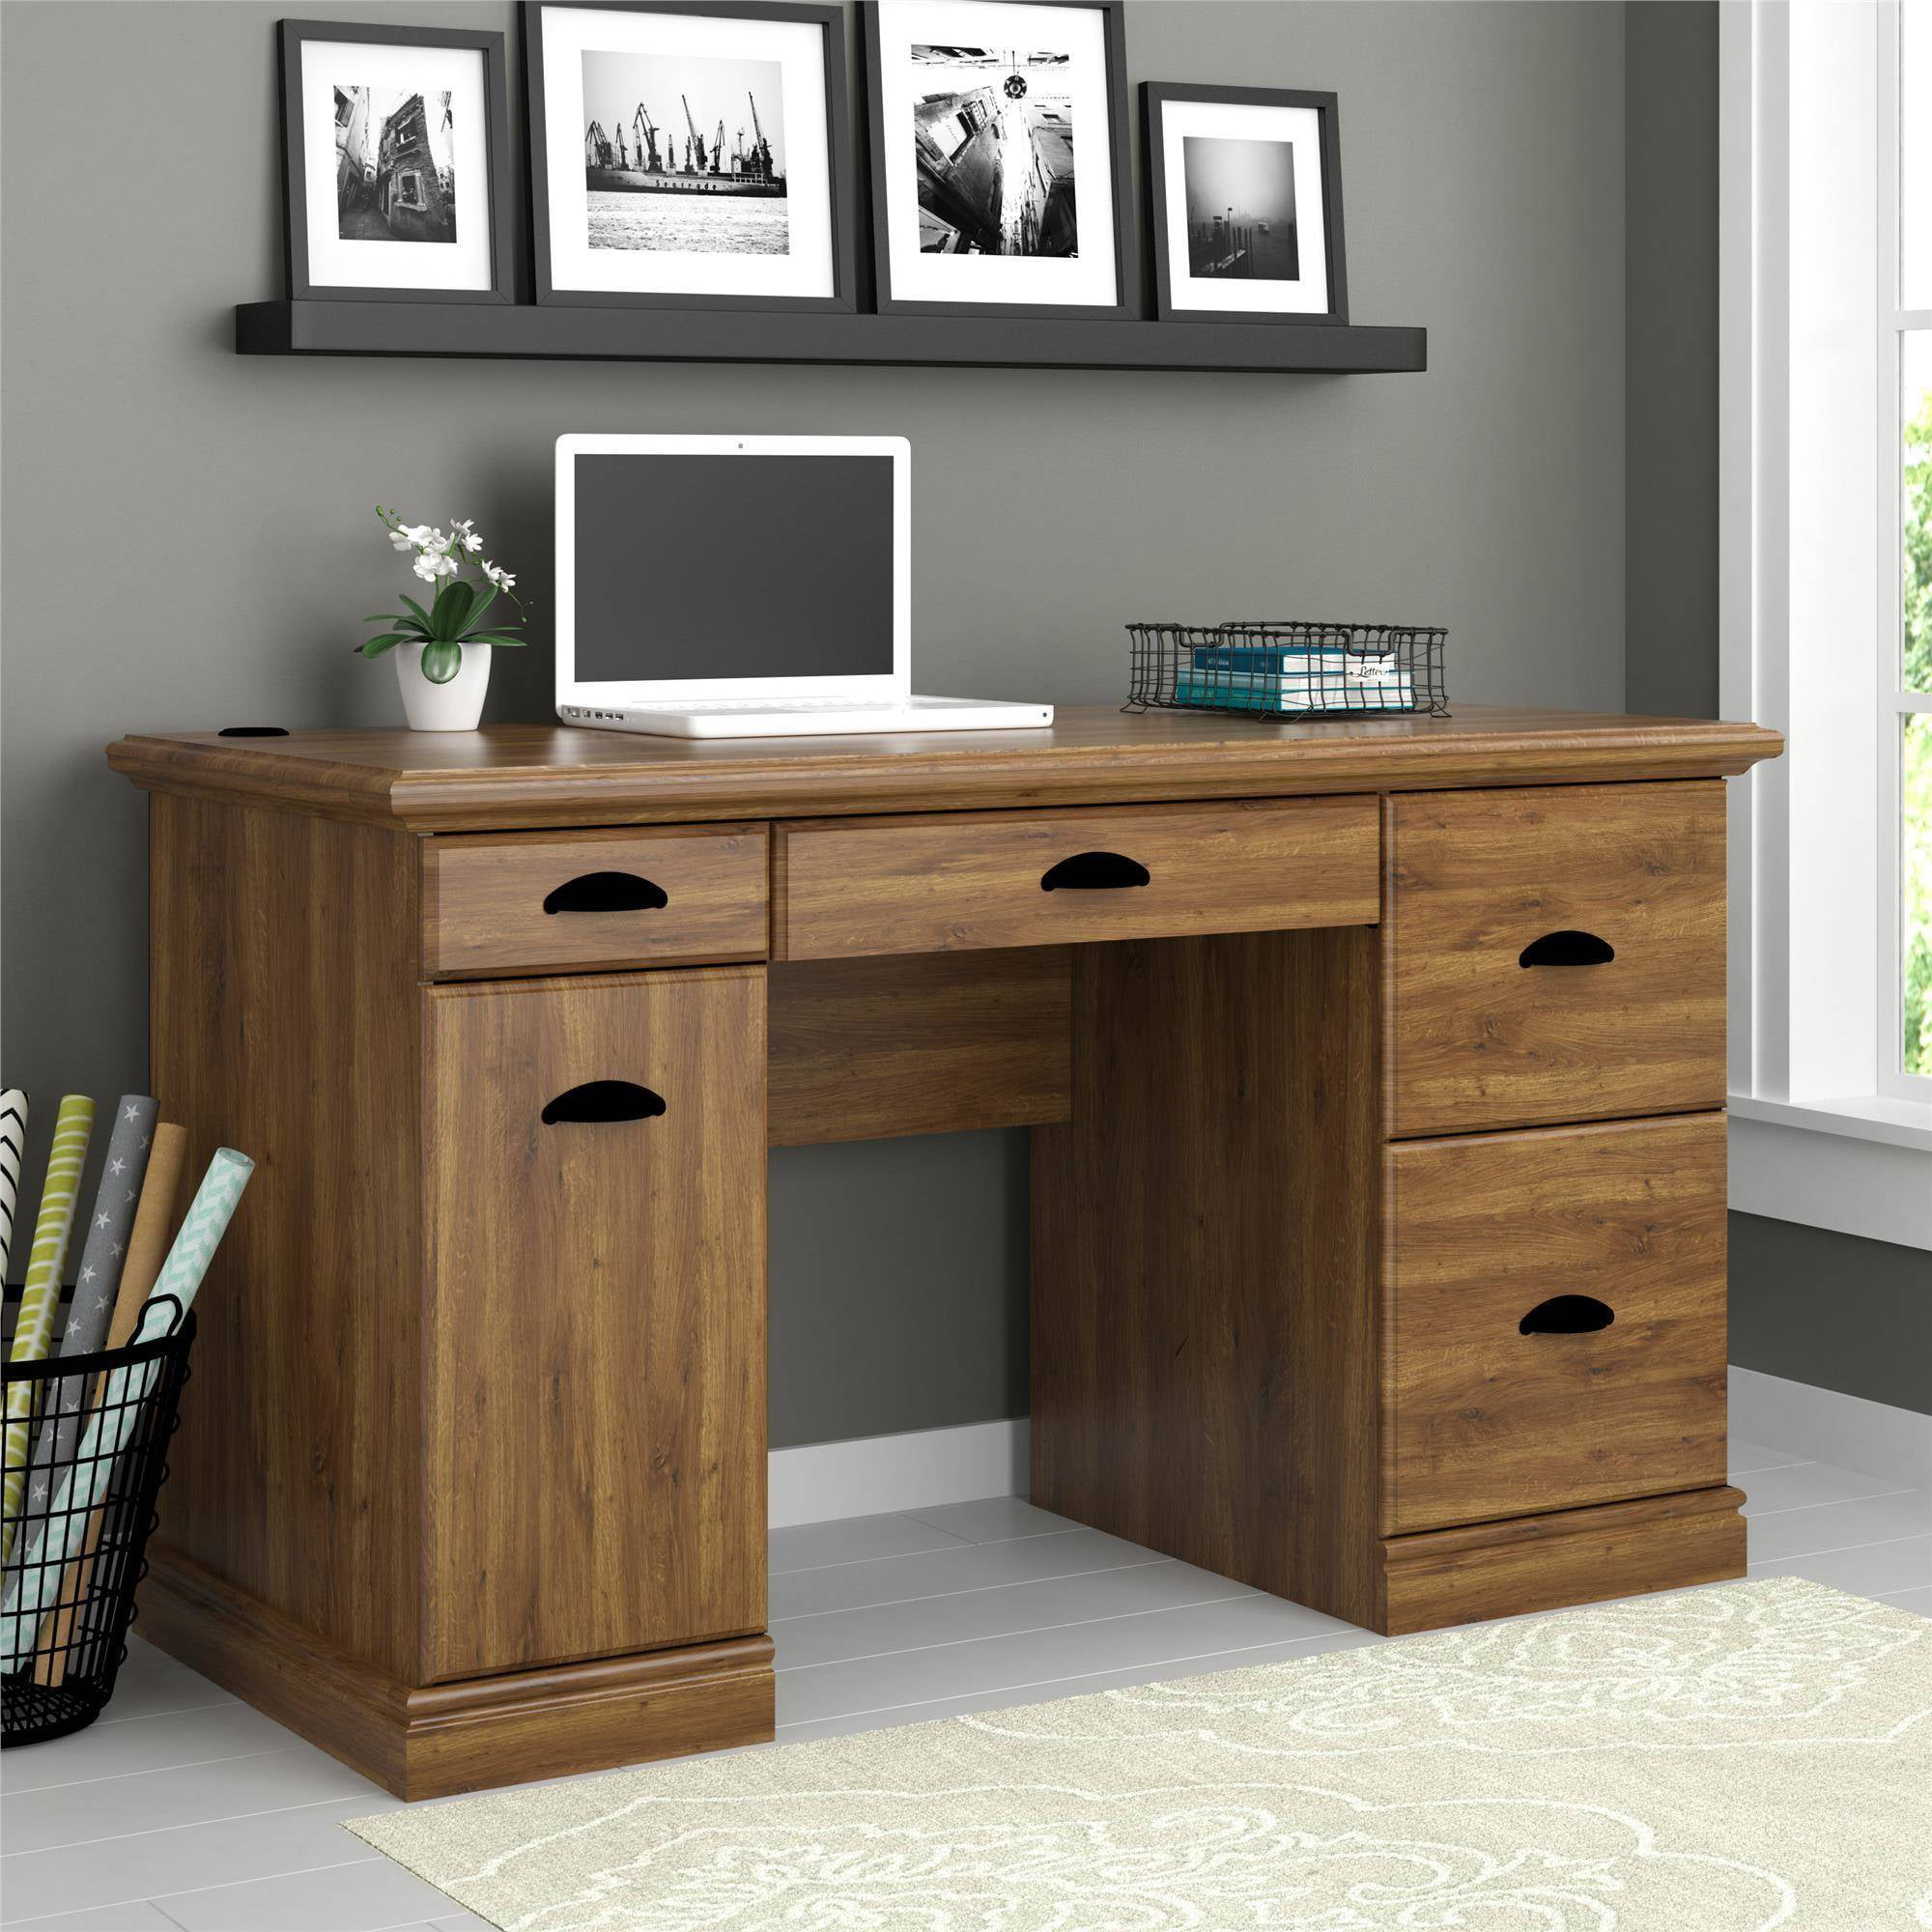 Desks For Teenage Rooms Captivating Teens' Room  Every Day Low Prices  Walmart Design Ideas